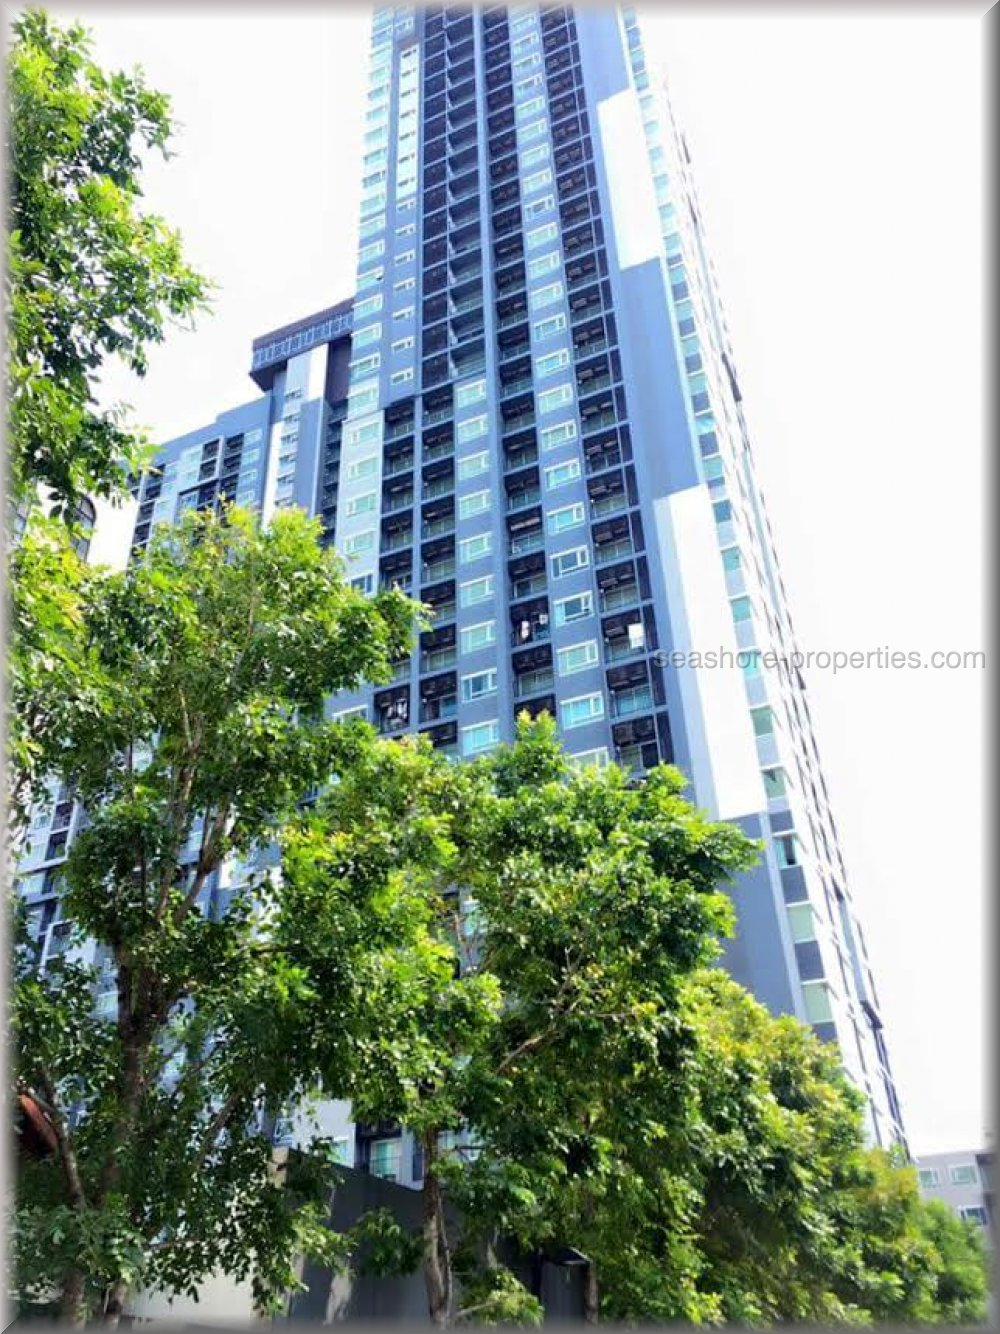 centric sea 1 bedroom     to rent in Central Pattaya Pattaya